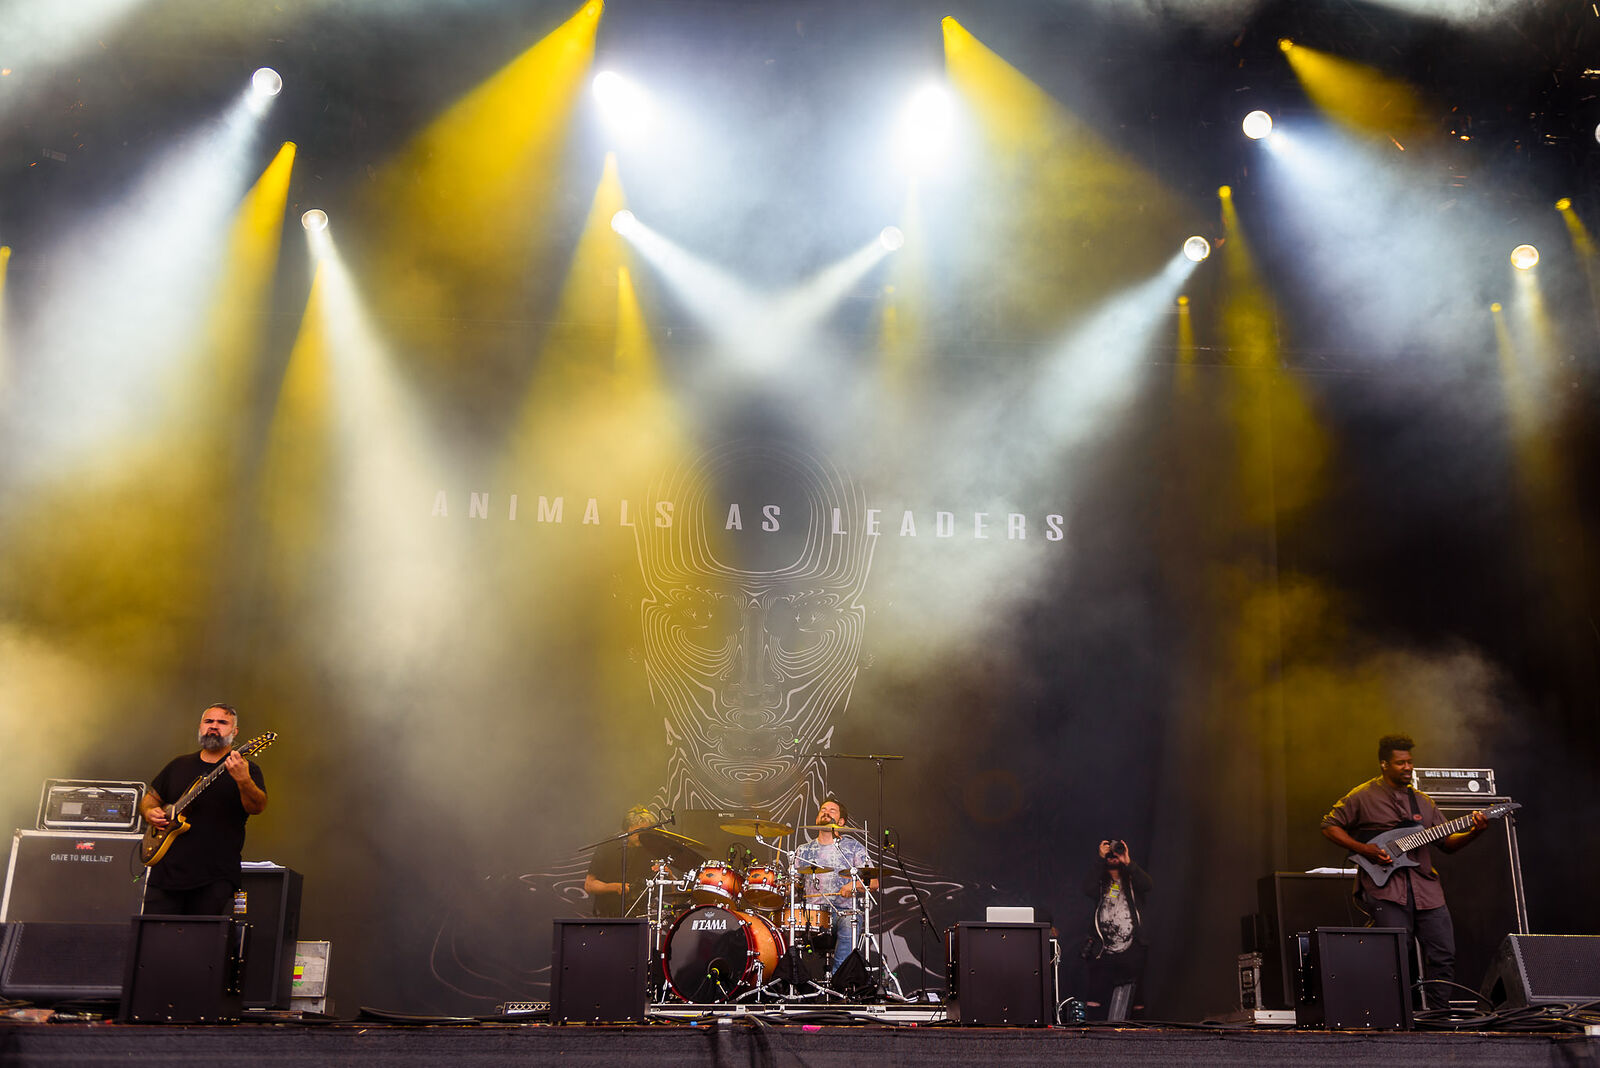 Animals As Leaders © 2019 David Dillon, c/o Download